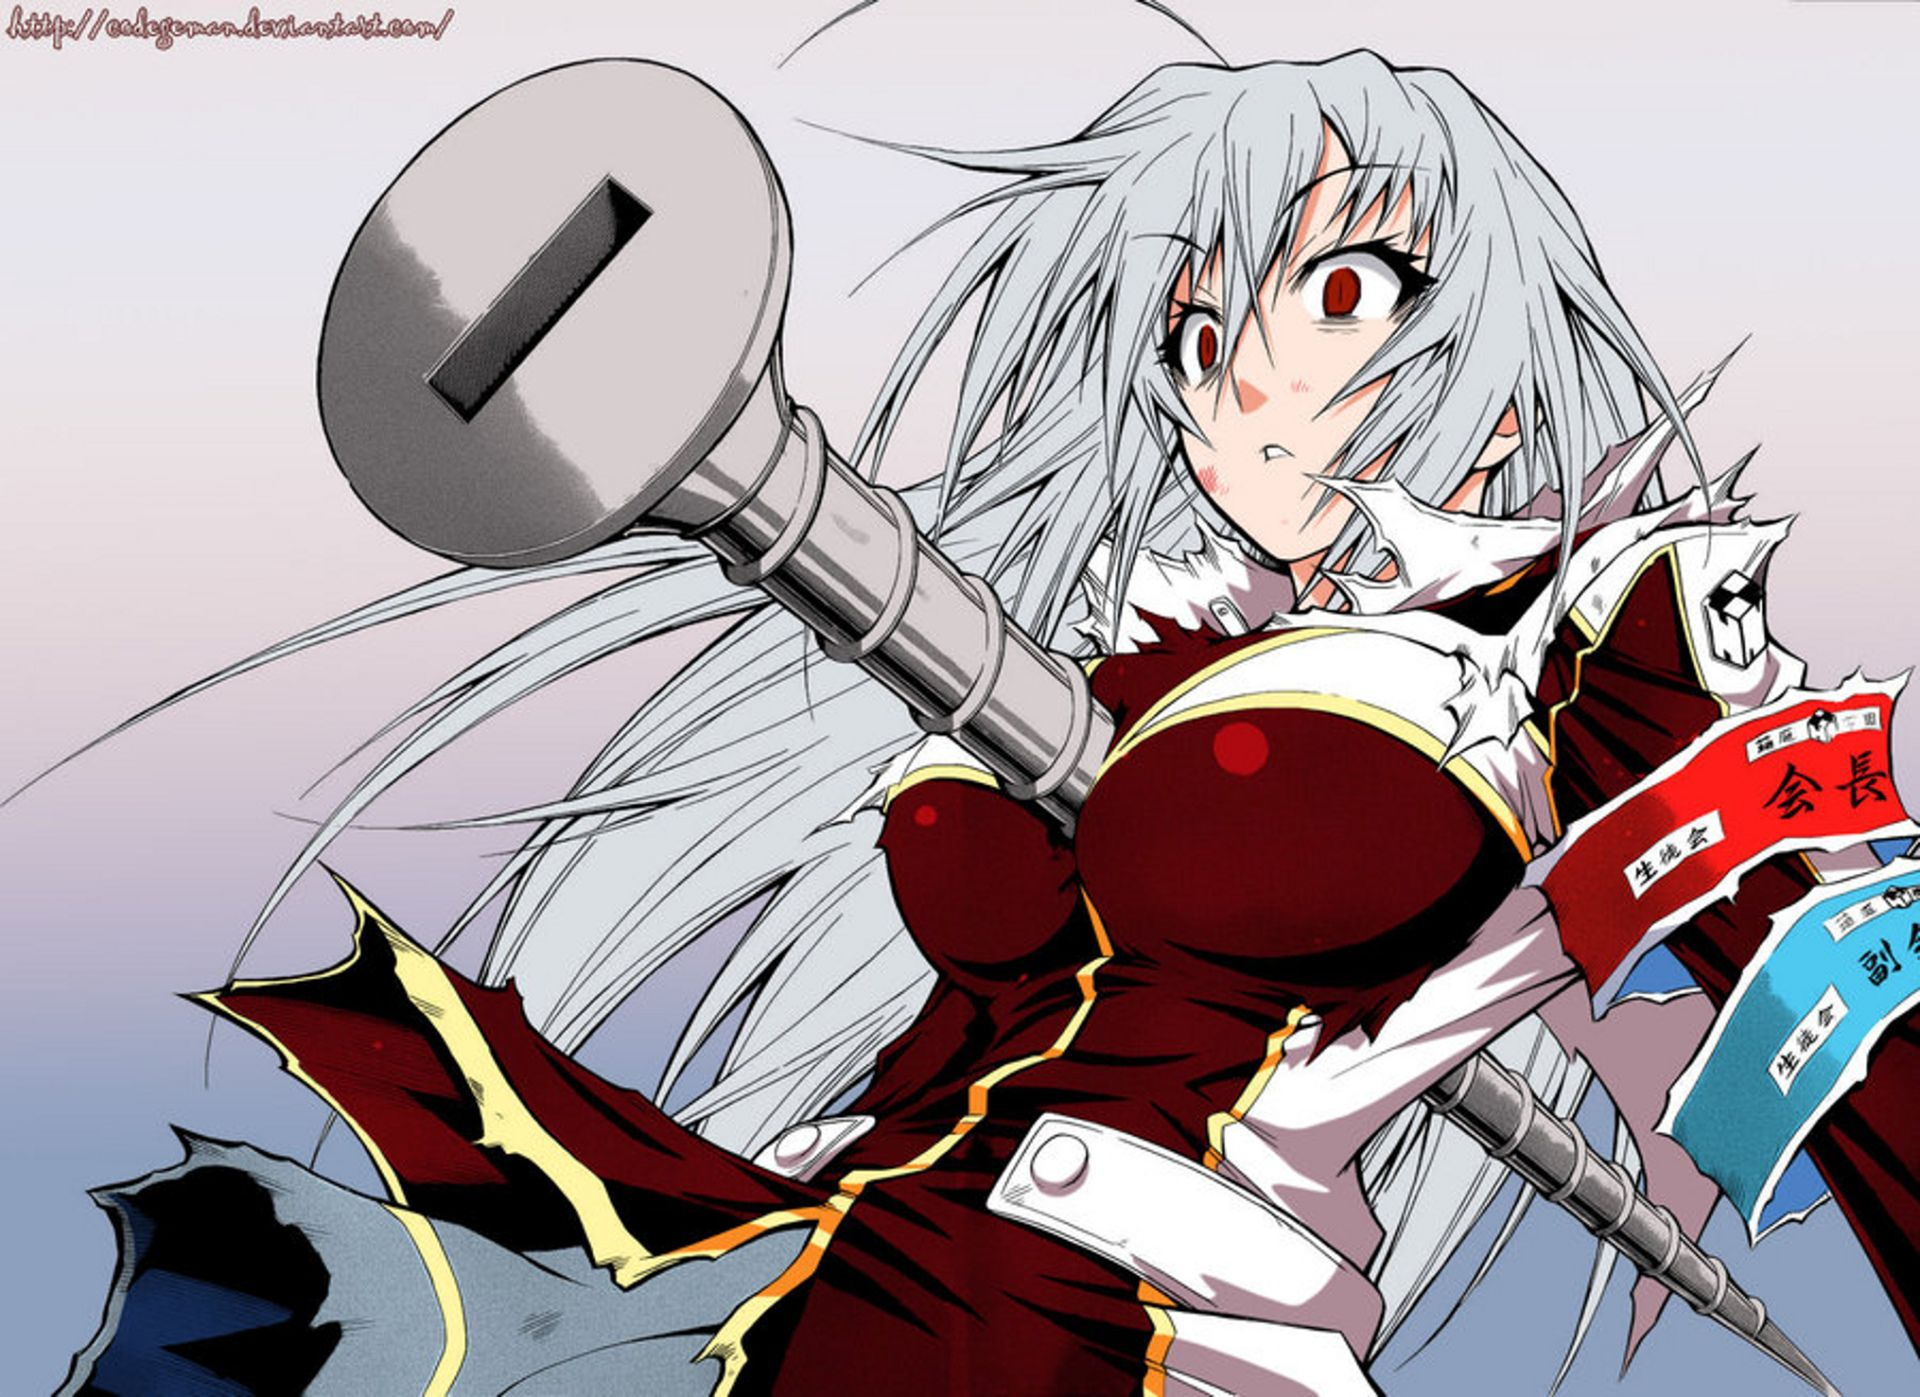 Anime Medaka Box Wallpaper | ANIME | Pinterest | Medaka box and Anime